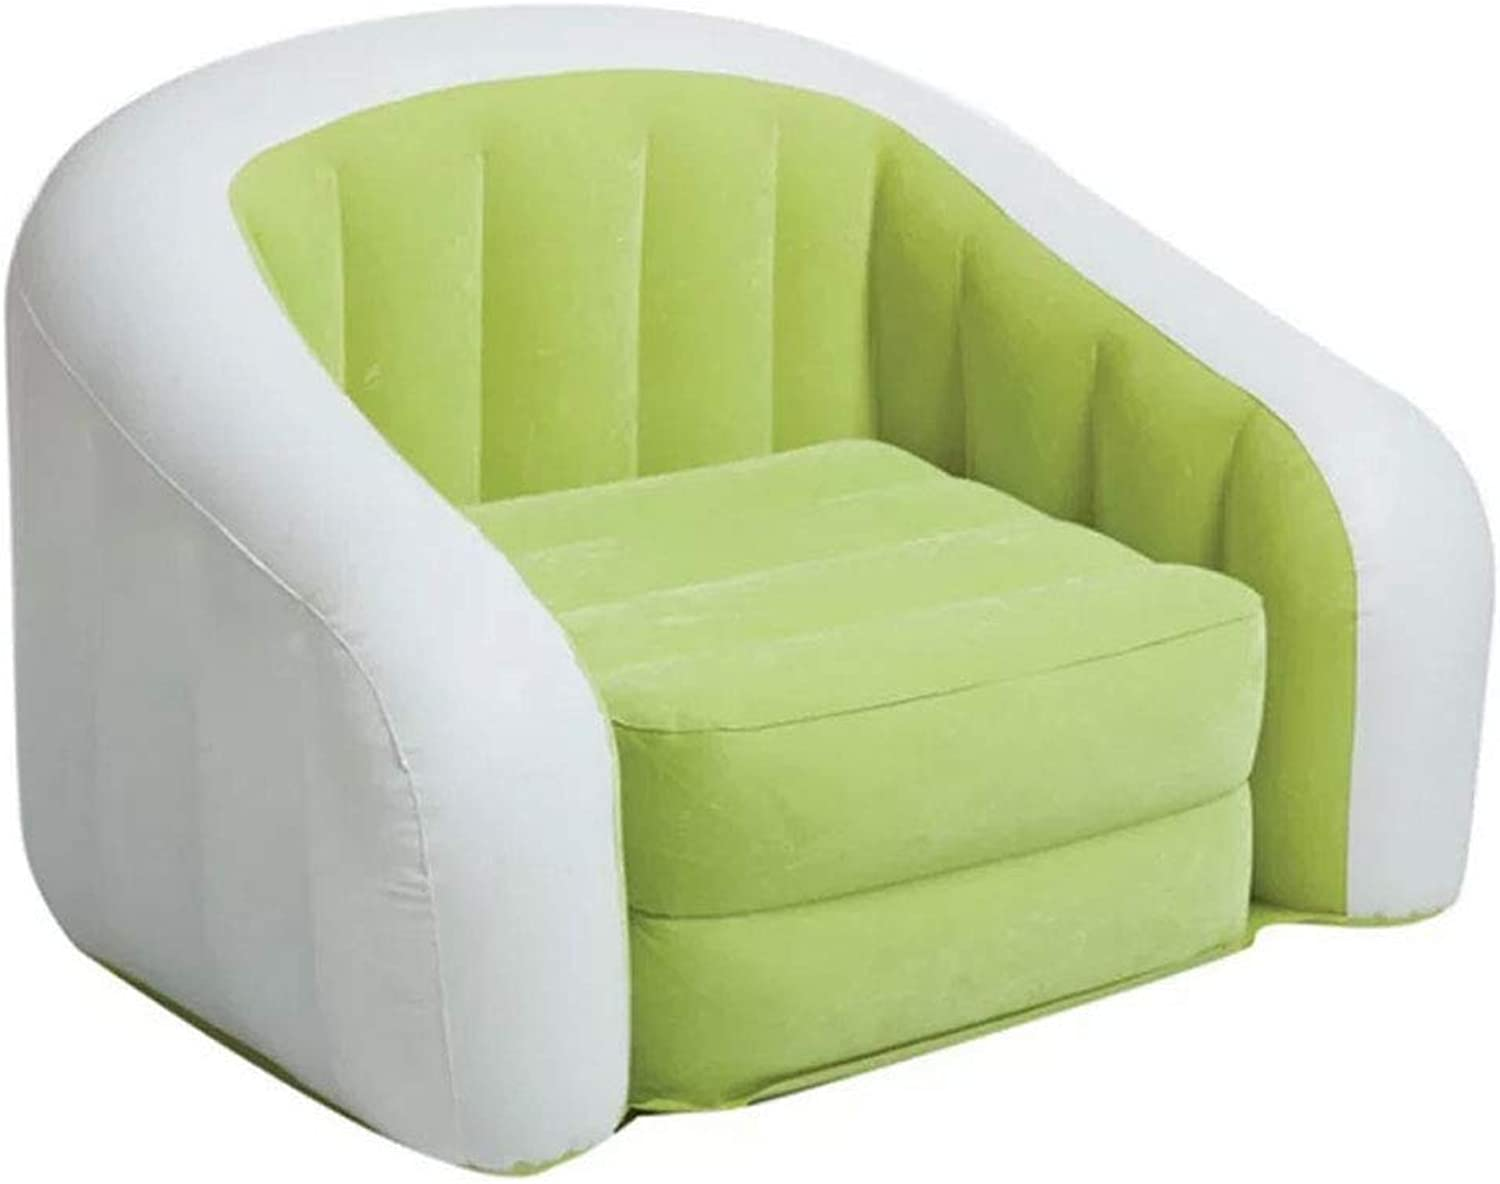 Inflatable Sofa Lazy Luxury Flocked Sofa- Applicable to Indoor and Outdoor (color   Green)